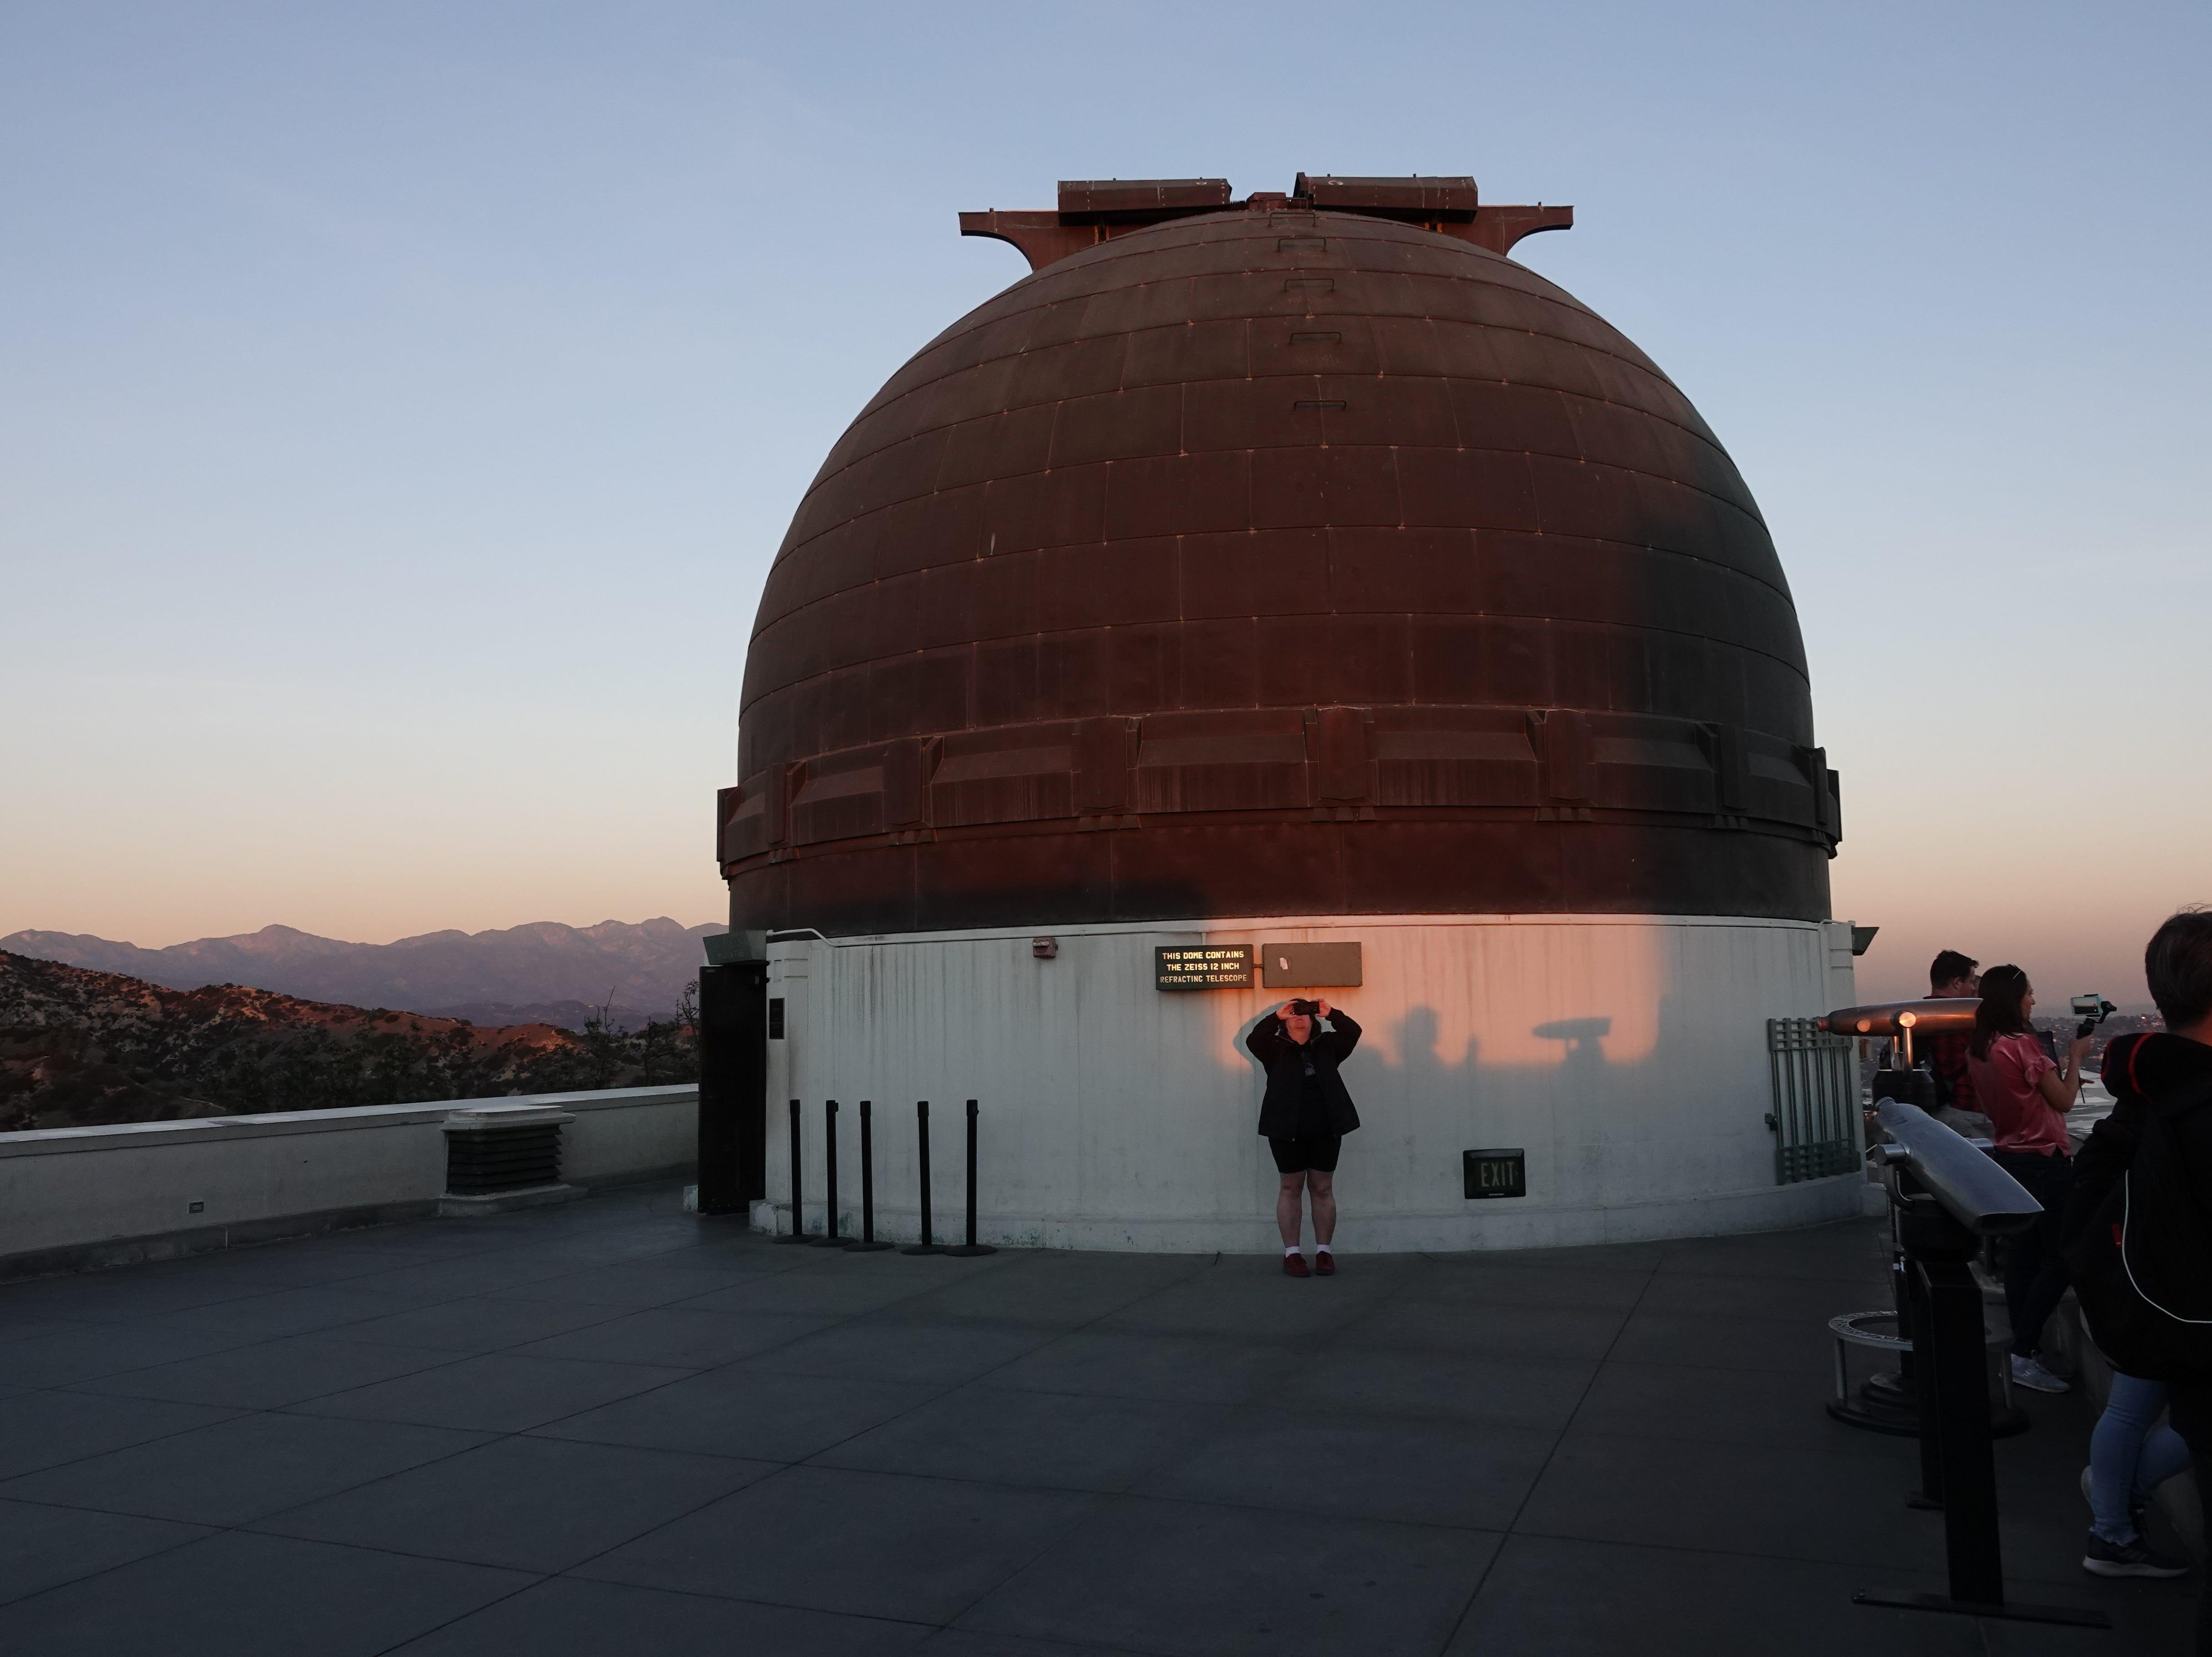 Taking photos at the Griffith Observatory